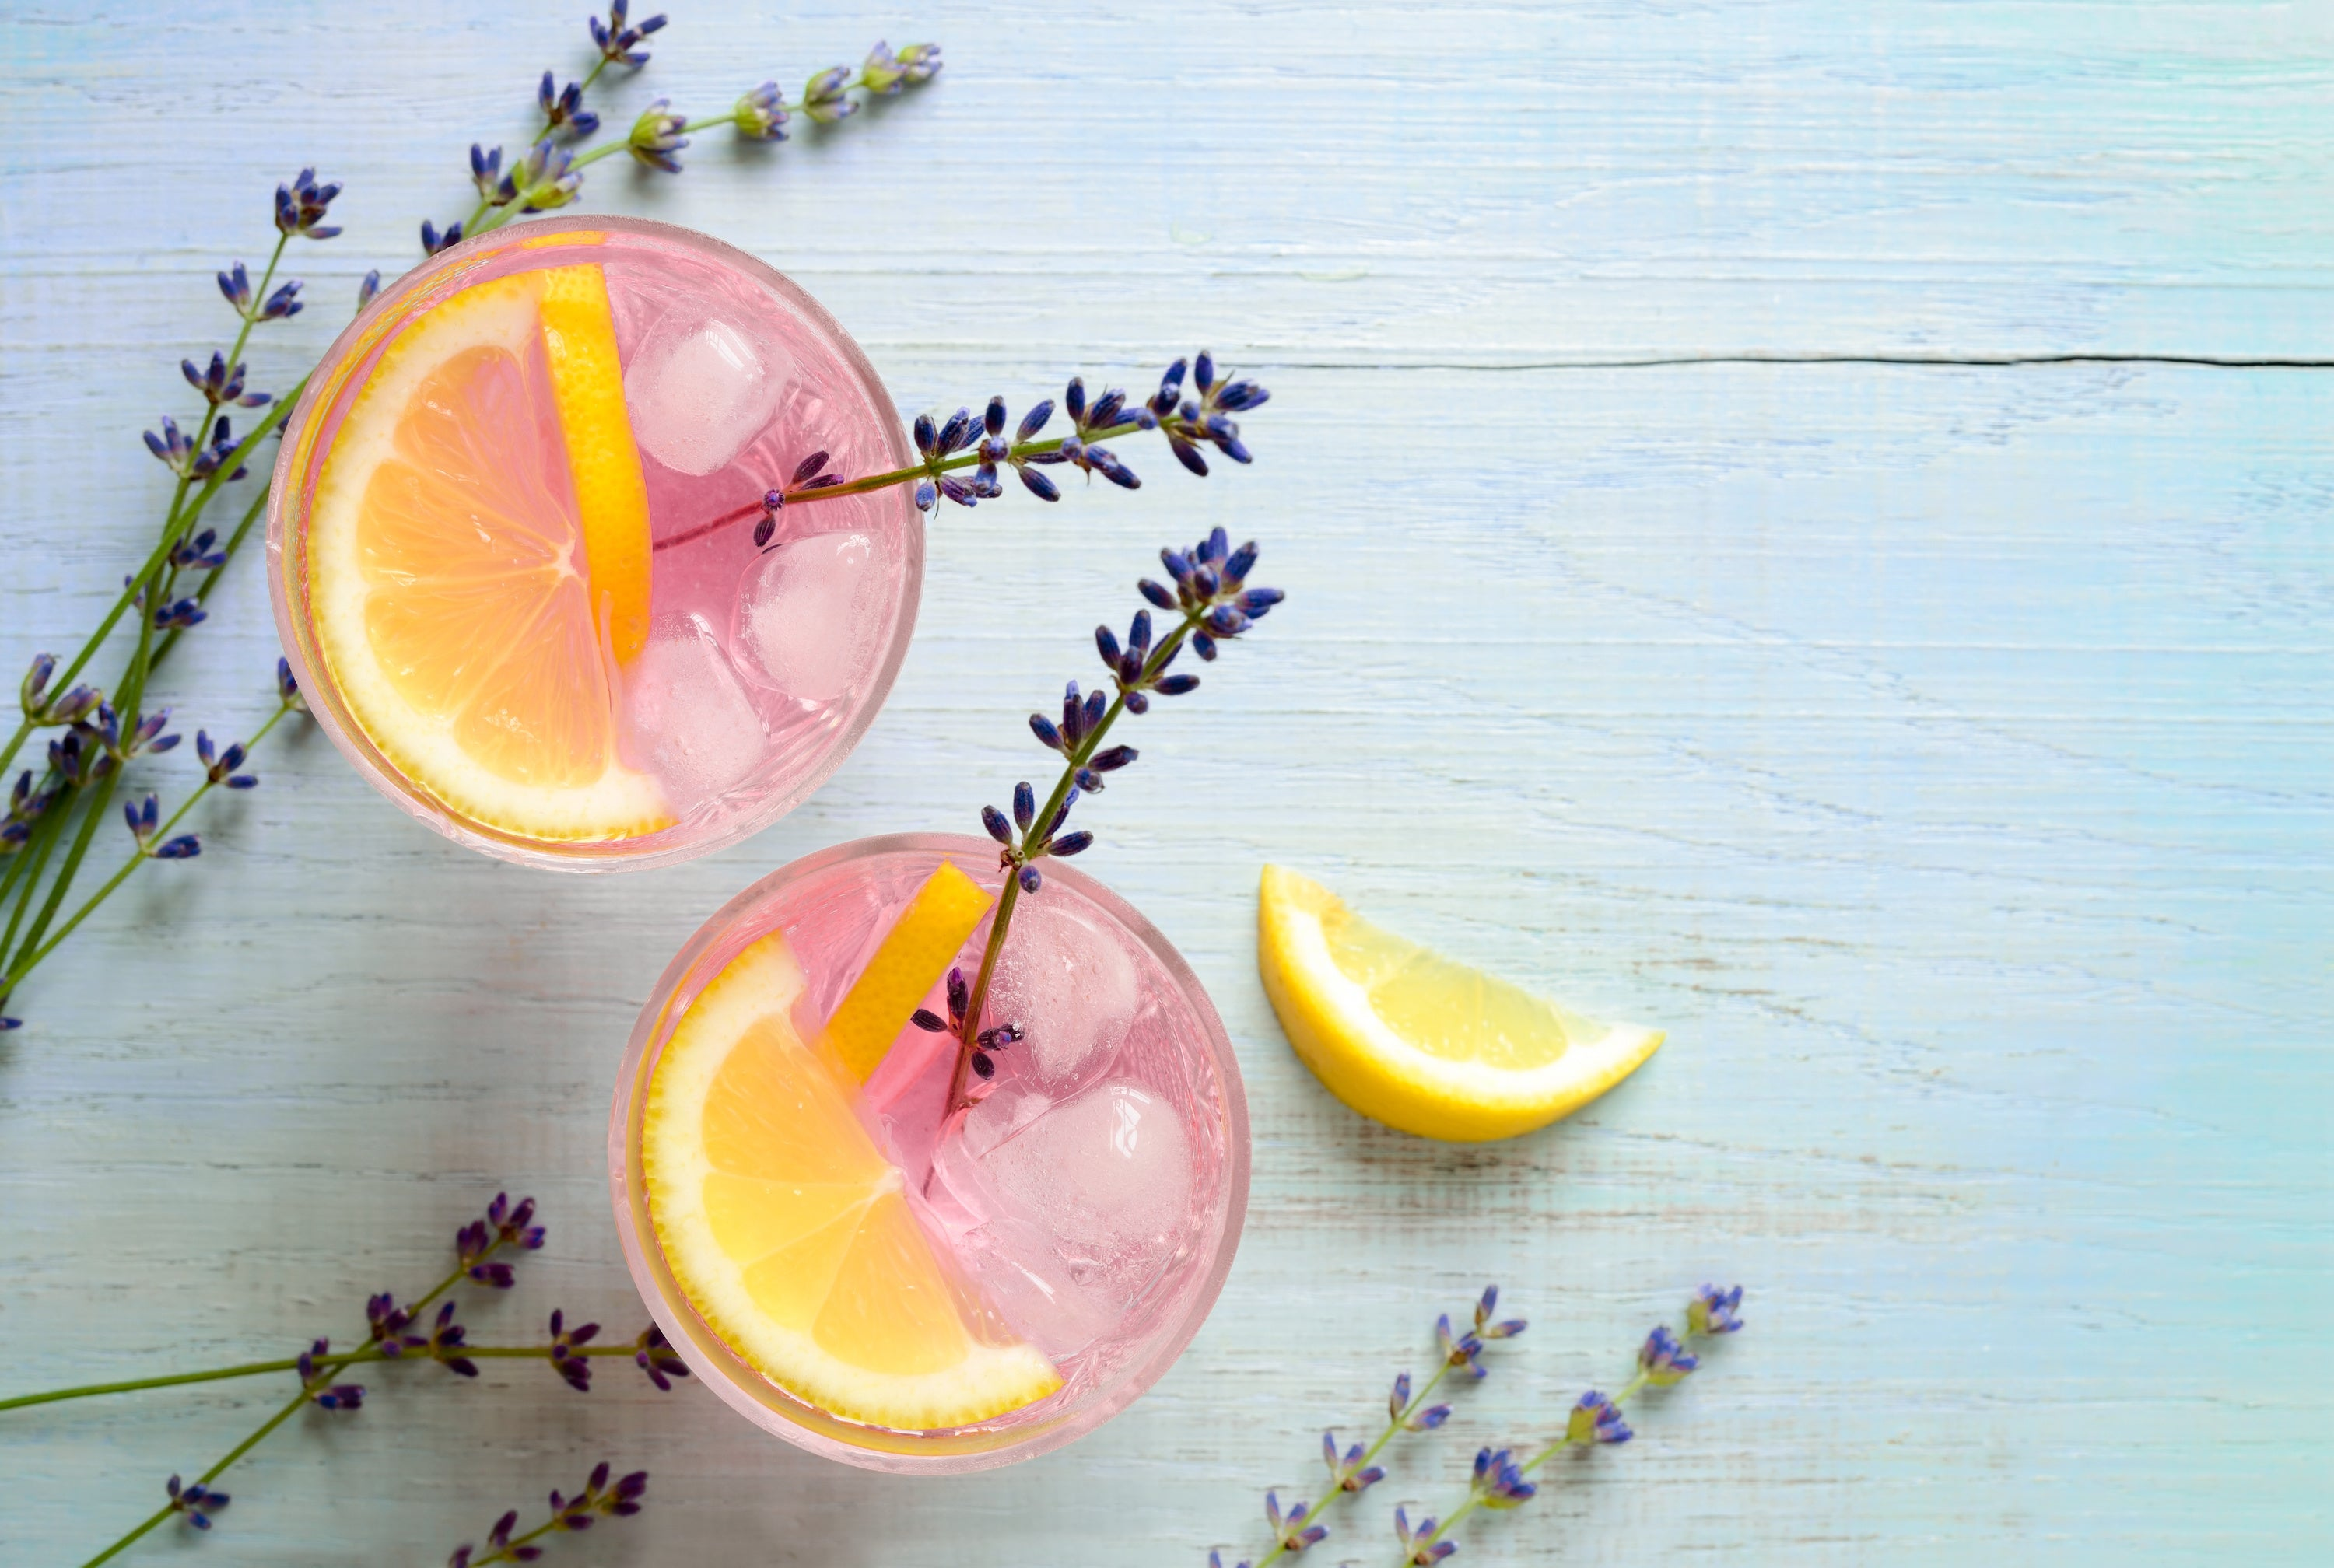 Cooking & Cannabis: Infused Lavender Lemonade